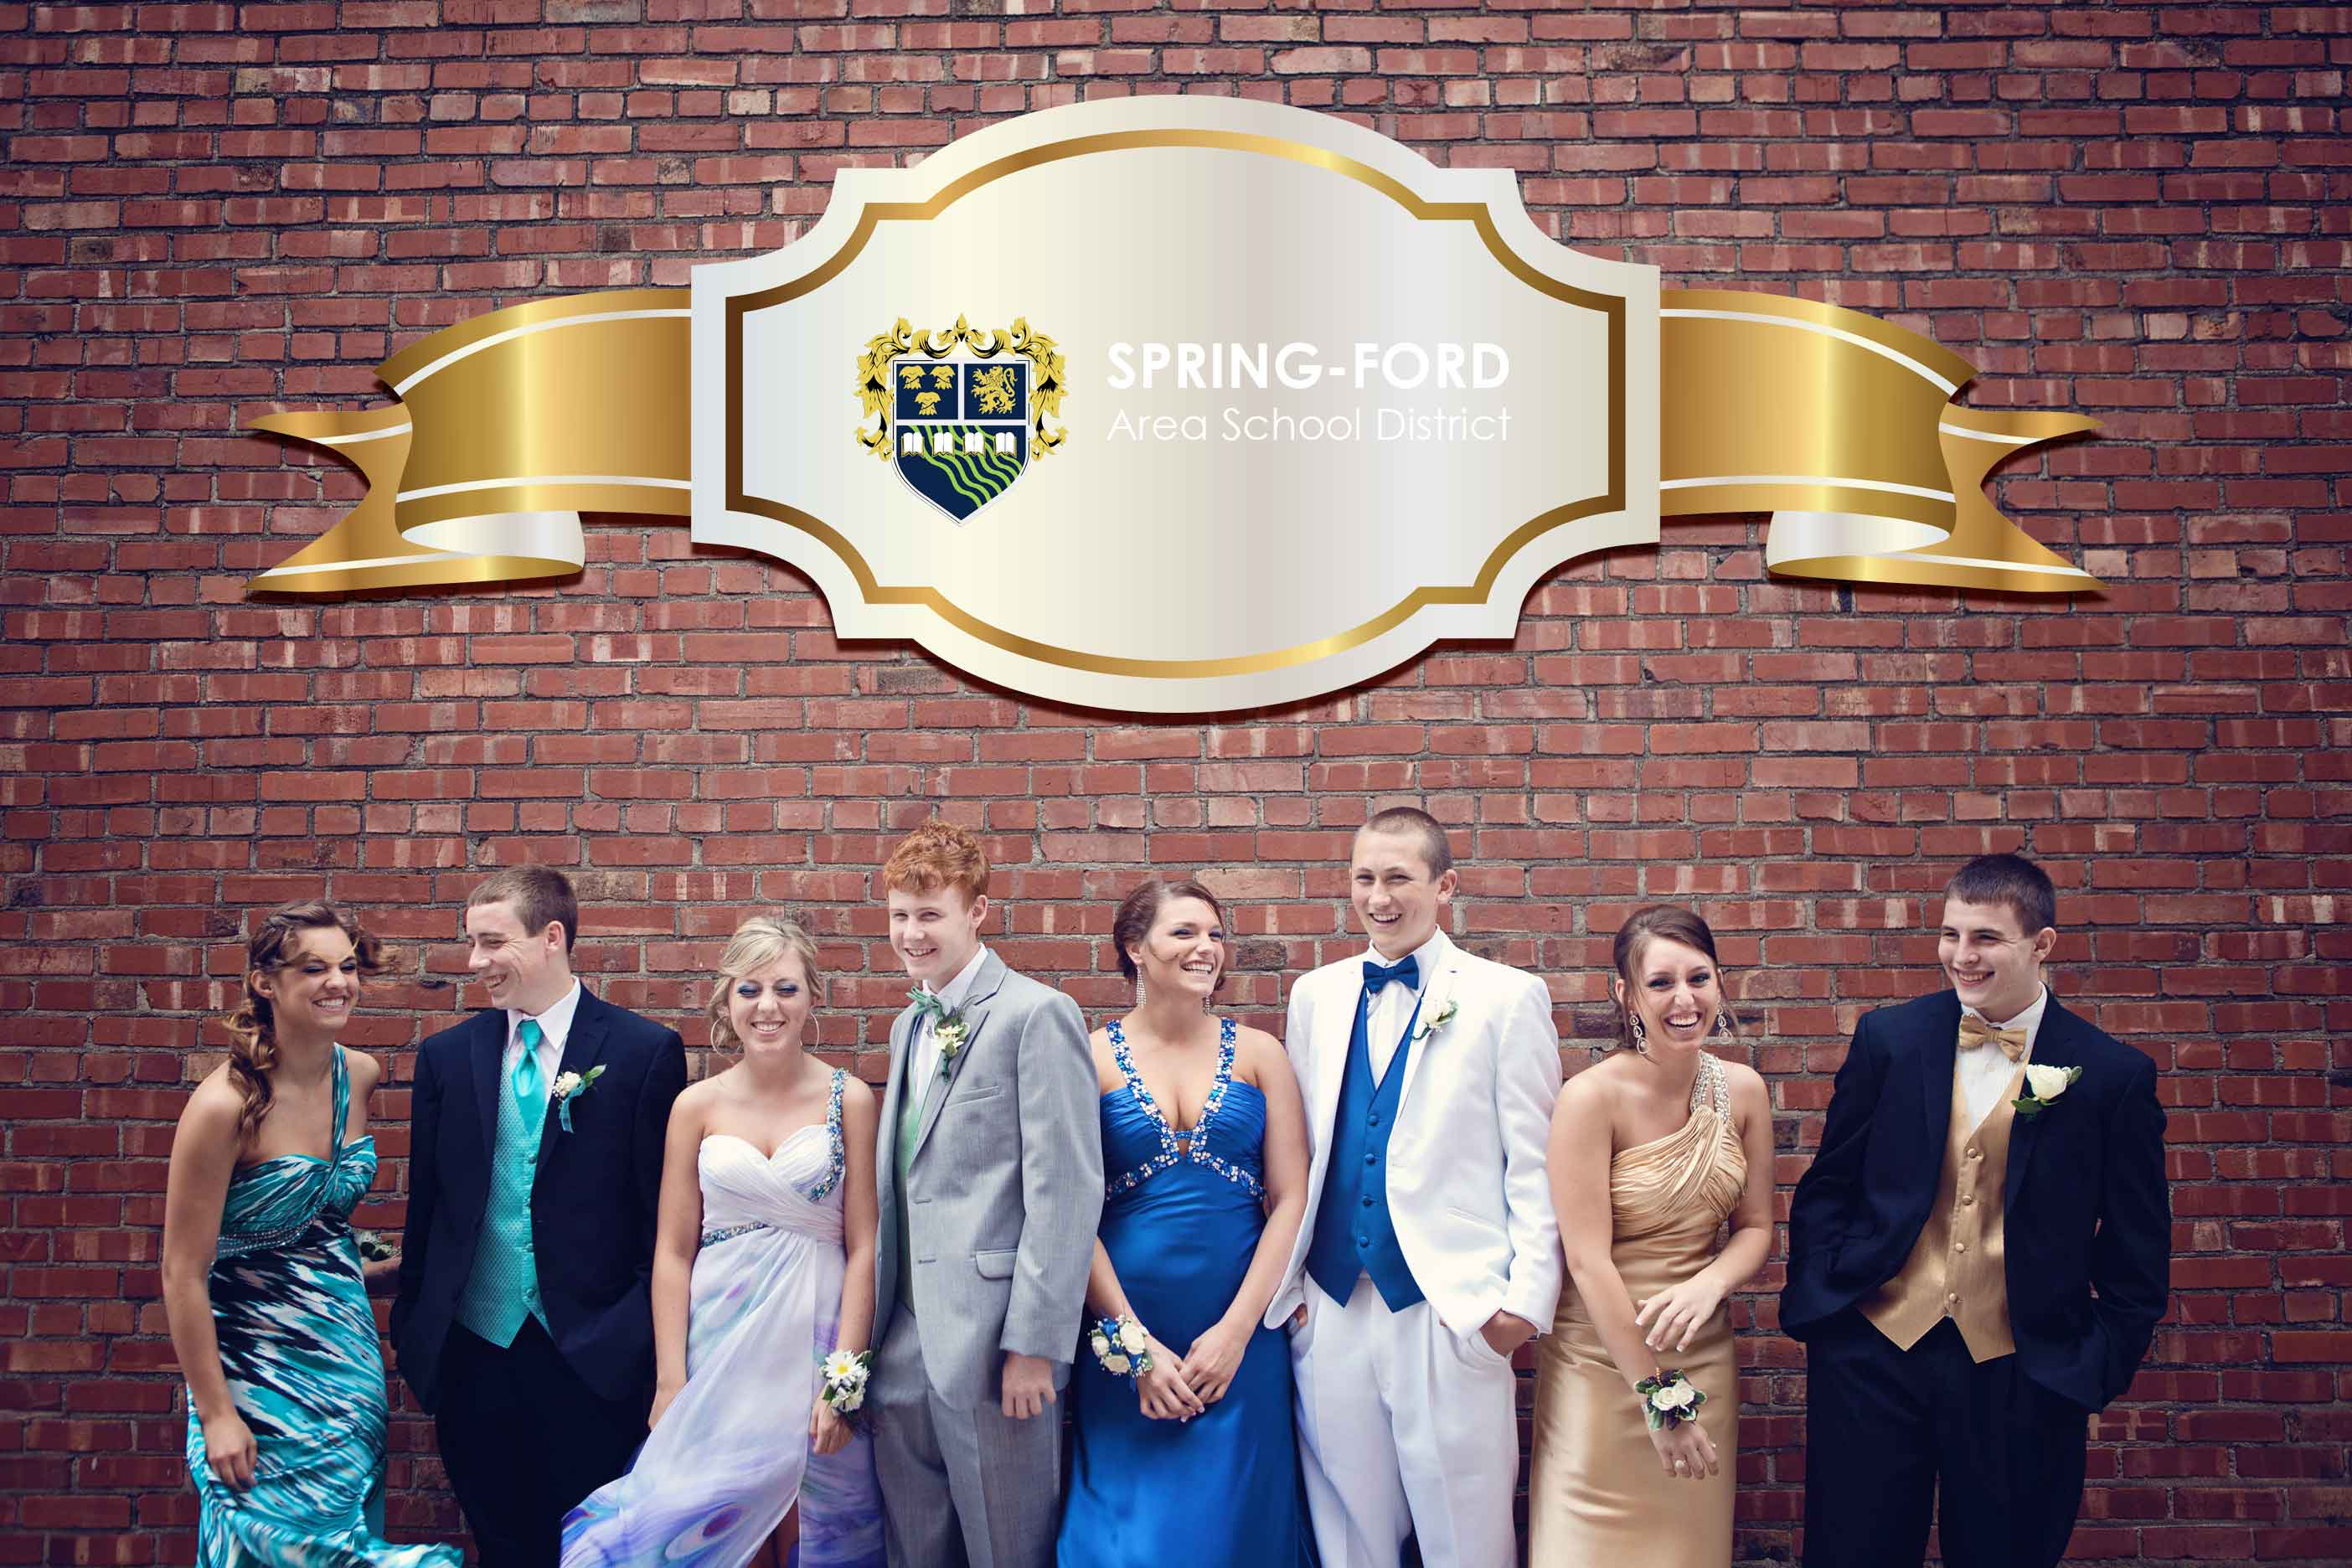 Spring Ford High School Prom Official Limo Party Bus